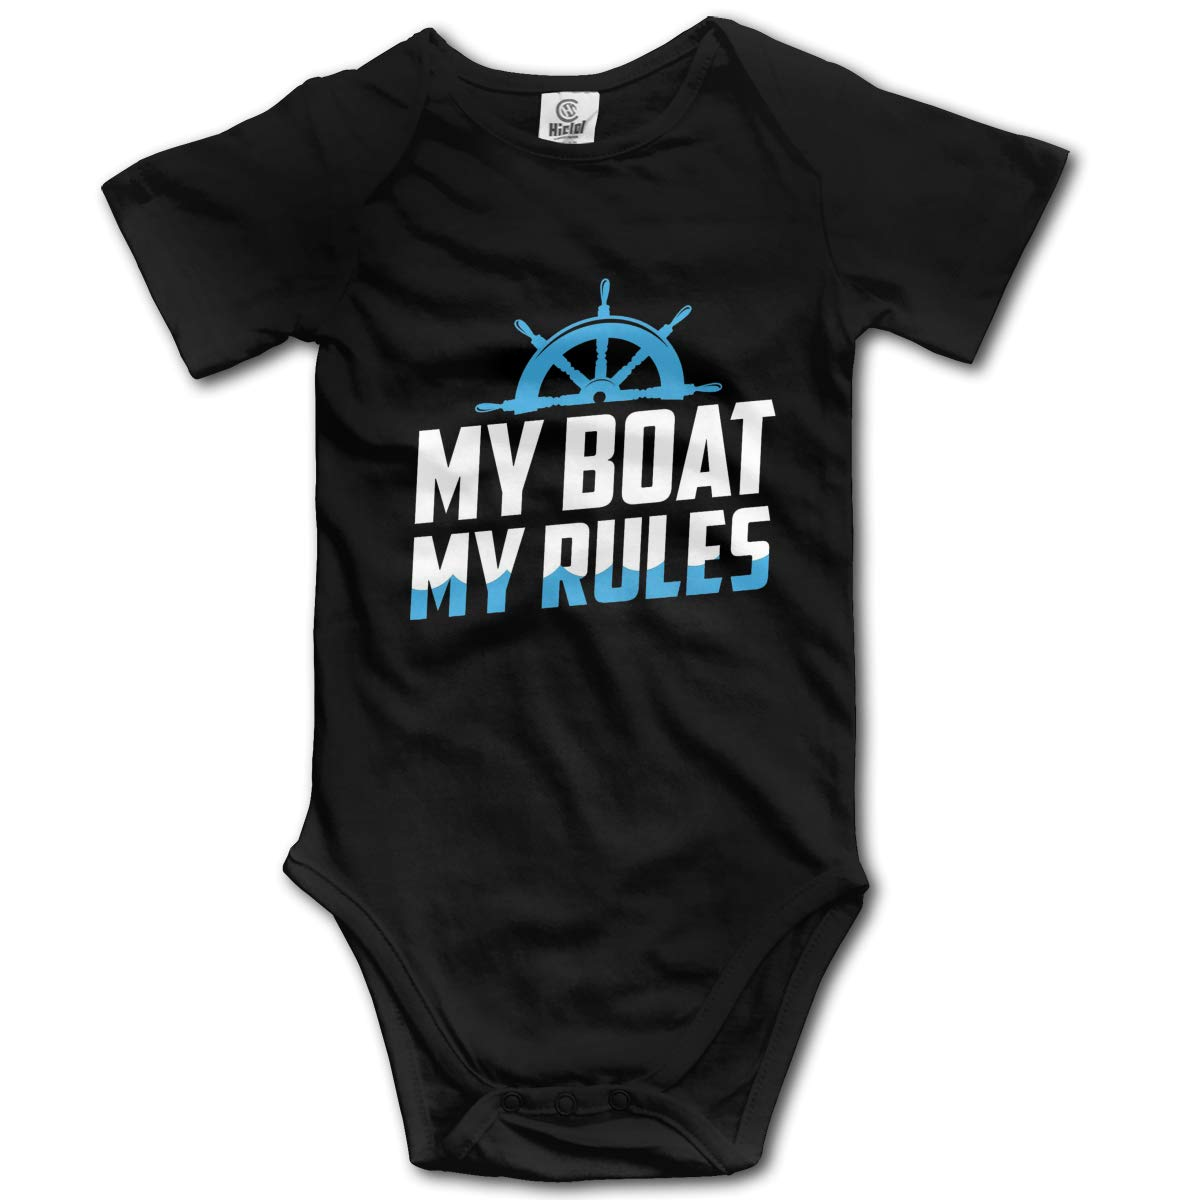 VANMASS Babys My Boat My Rules Short Sleeve Climbing Bodysuits Jumpsuit